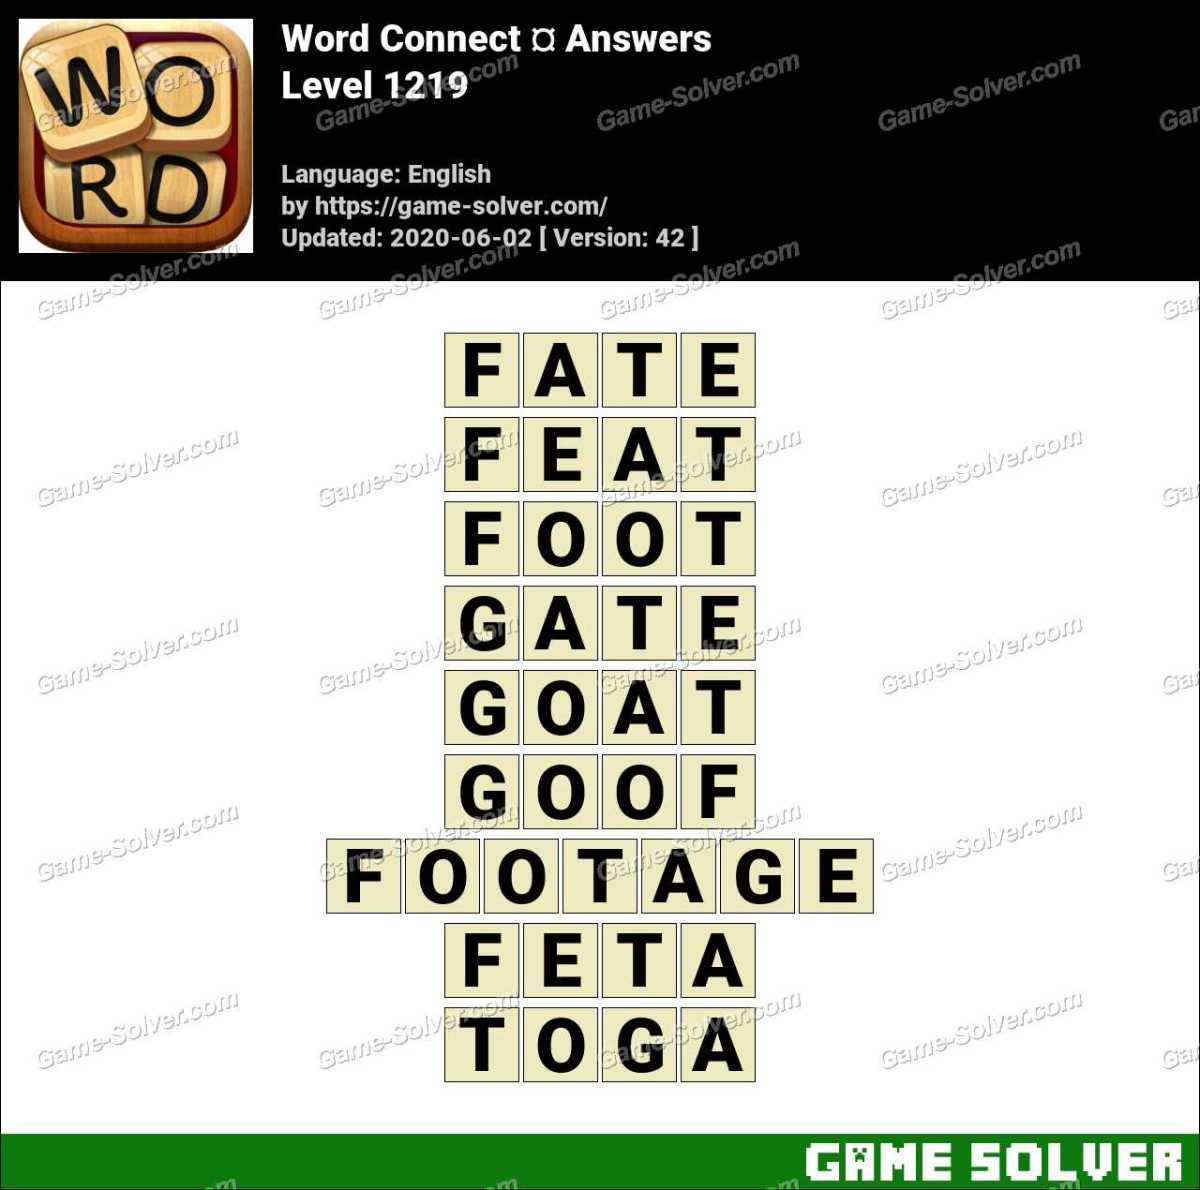 Word Connect Level 1219 Answers